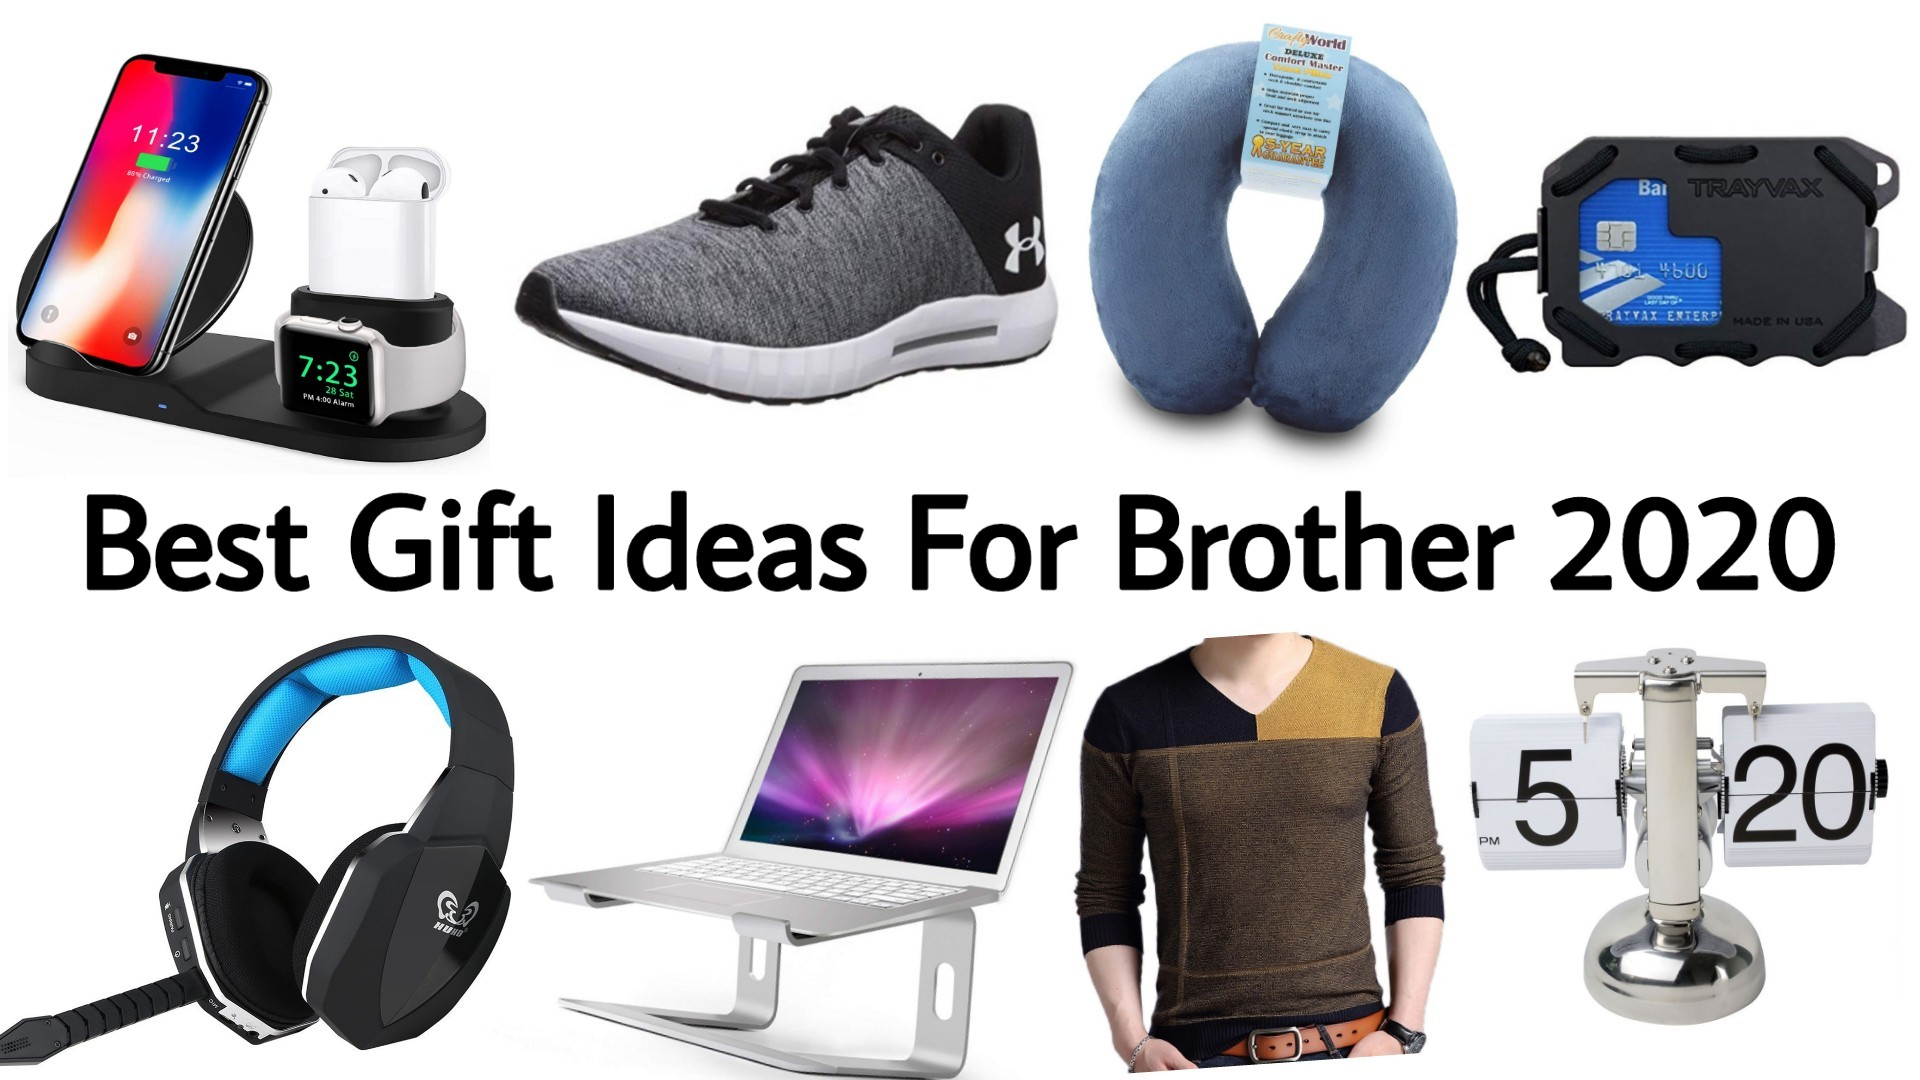 Best Christmas Gifts for Brother 2021 - Best Birthday Gifts for Brother 2021